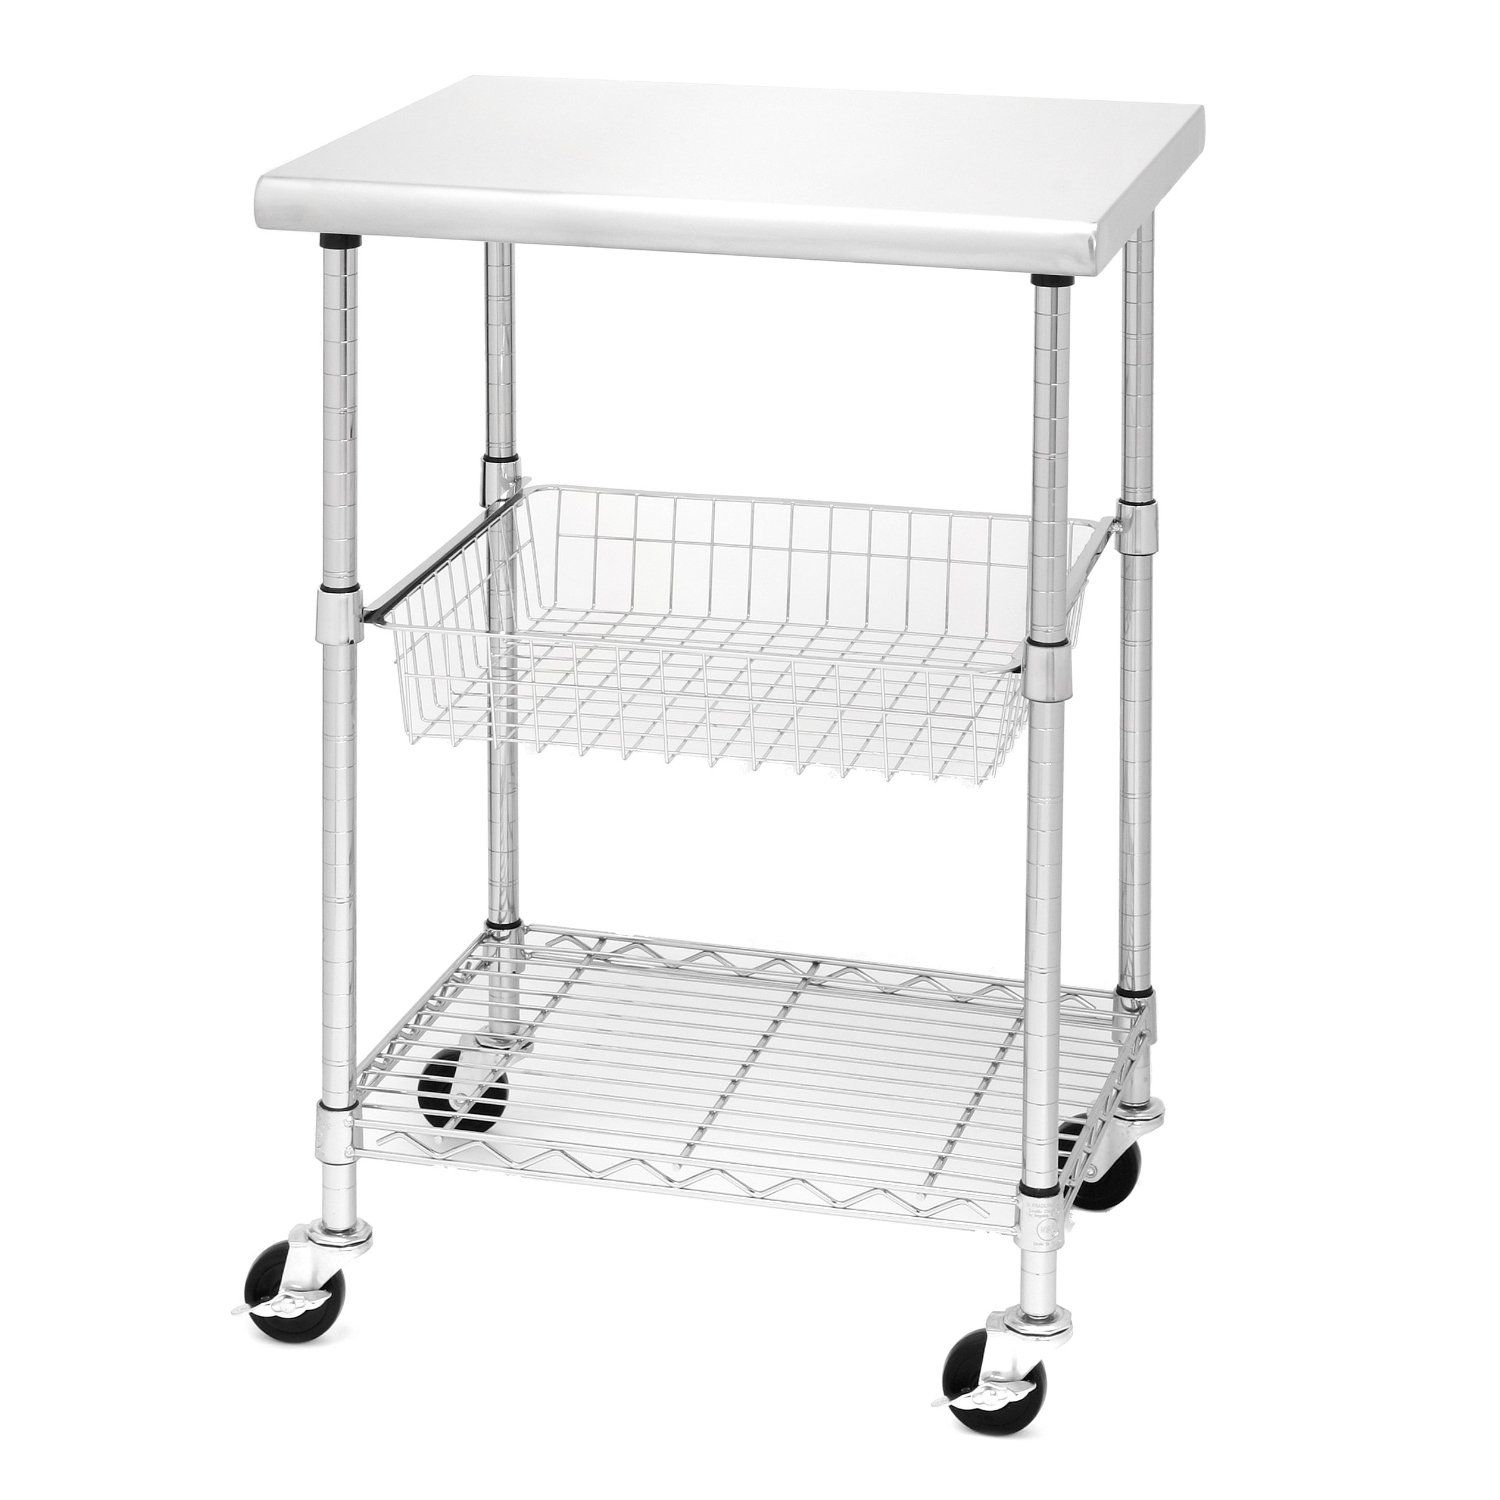 Exceptional Amazon.com   Seville Classics Stainless Steel Professional Kitchen Cart  Cutting Table   Closet Shelves